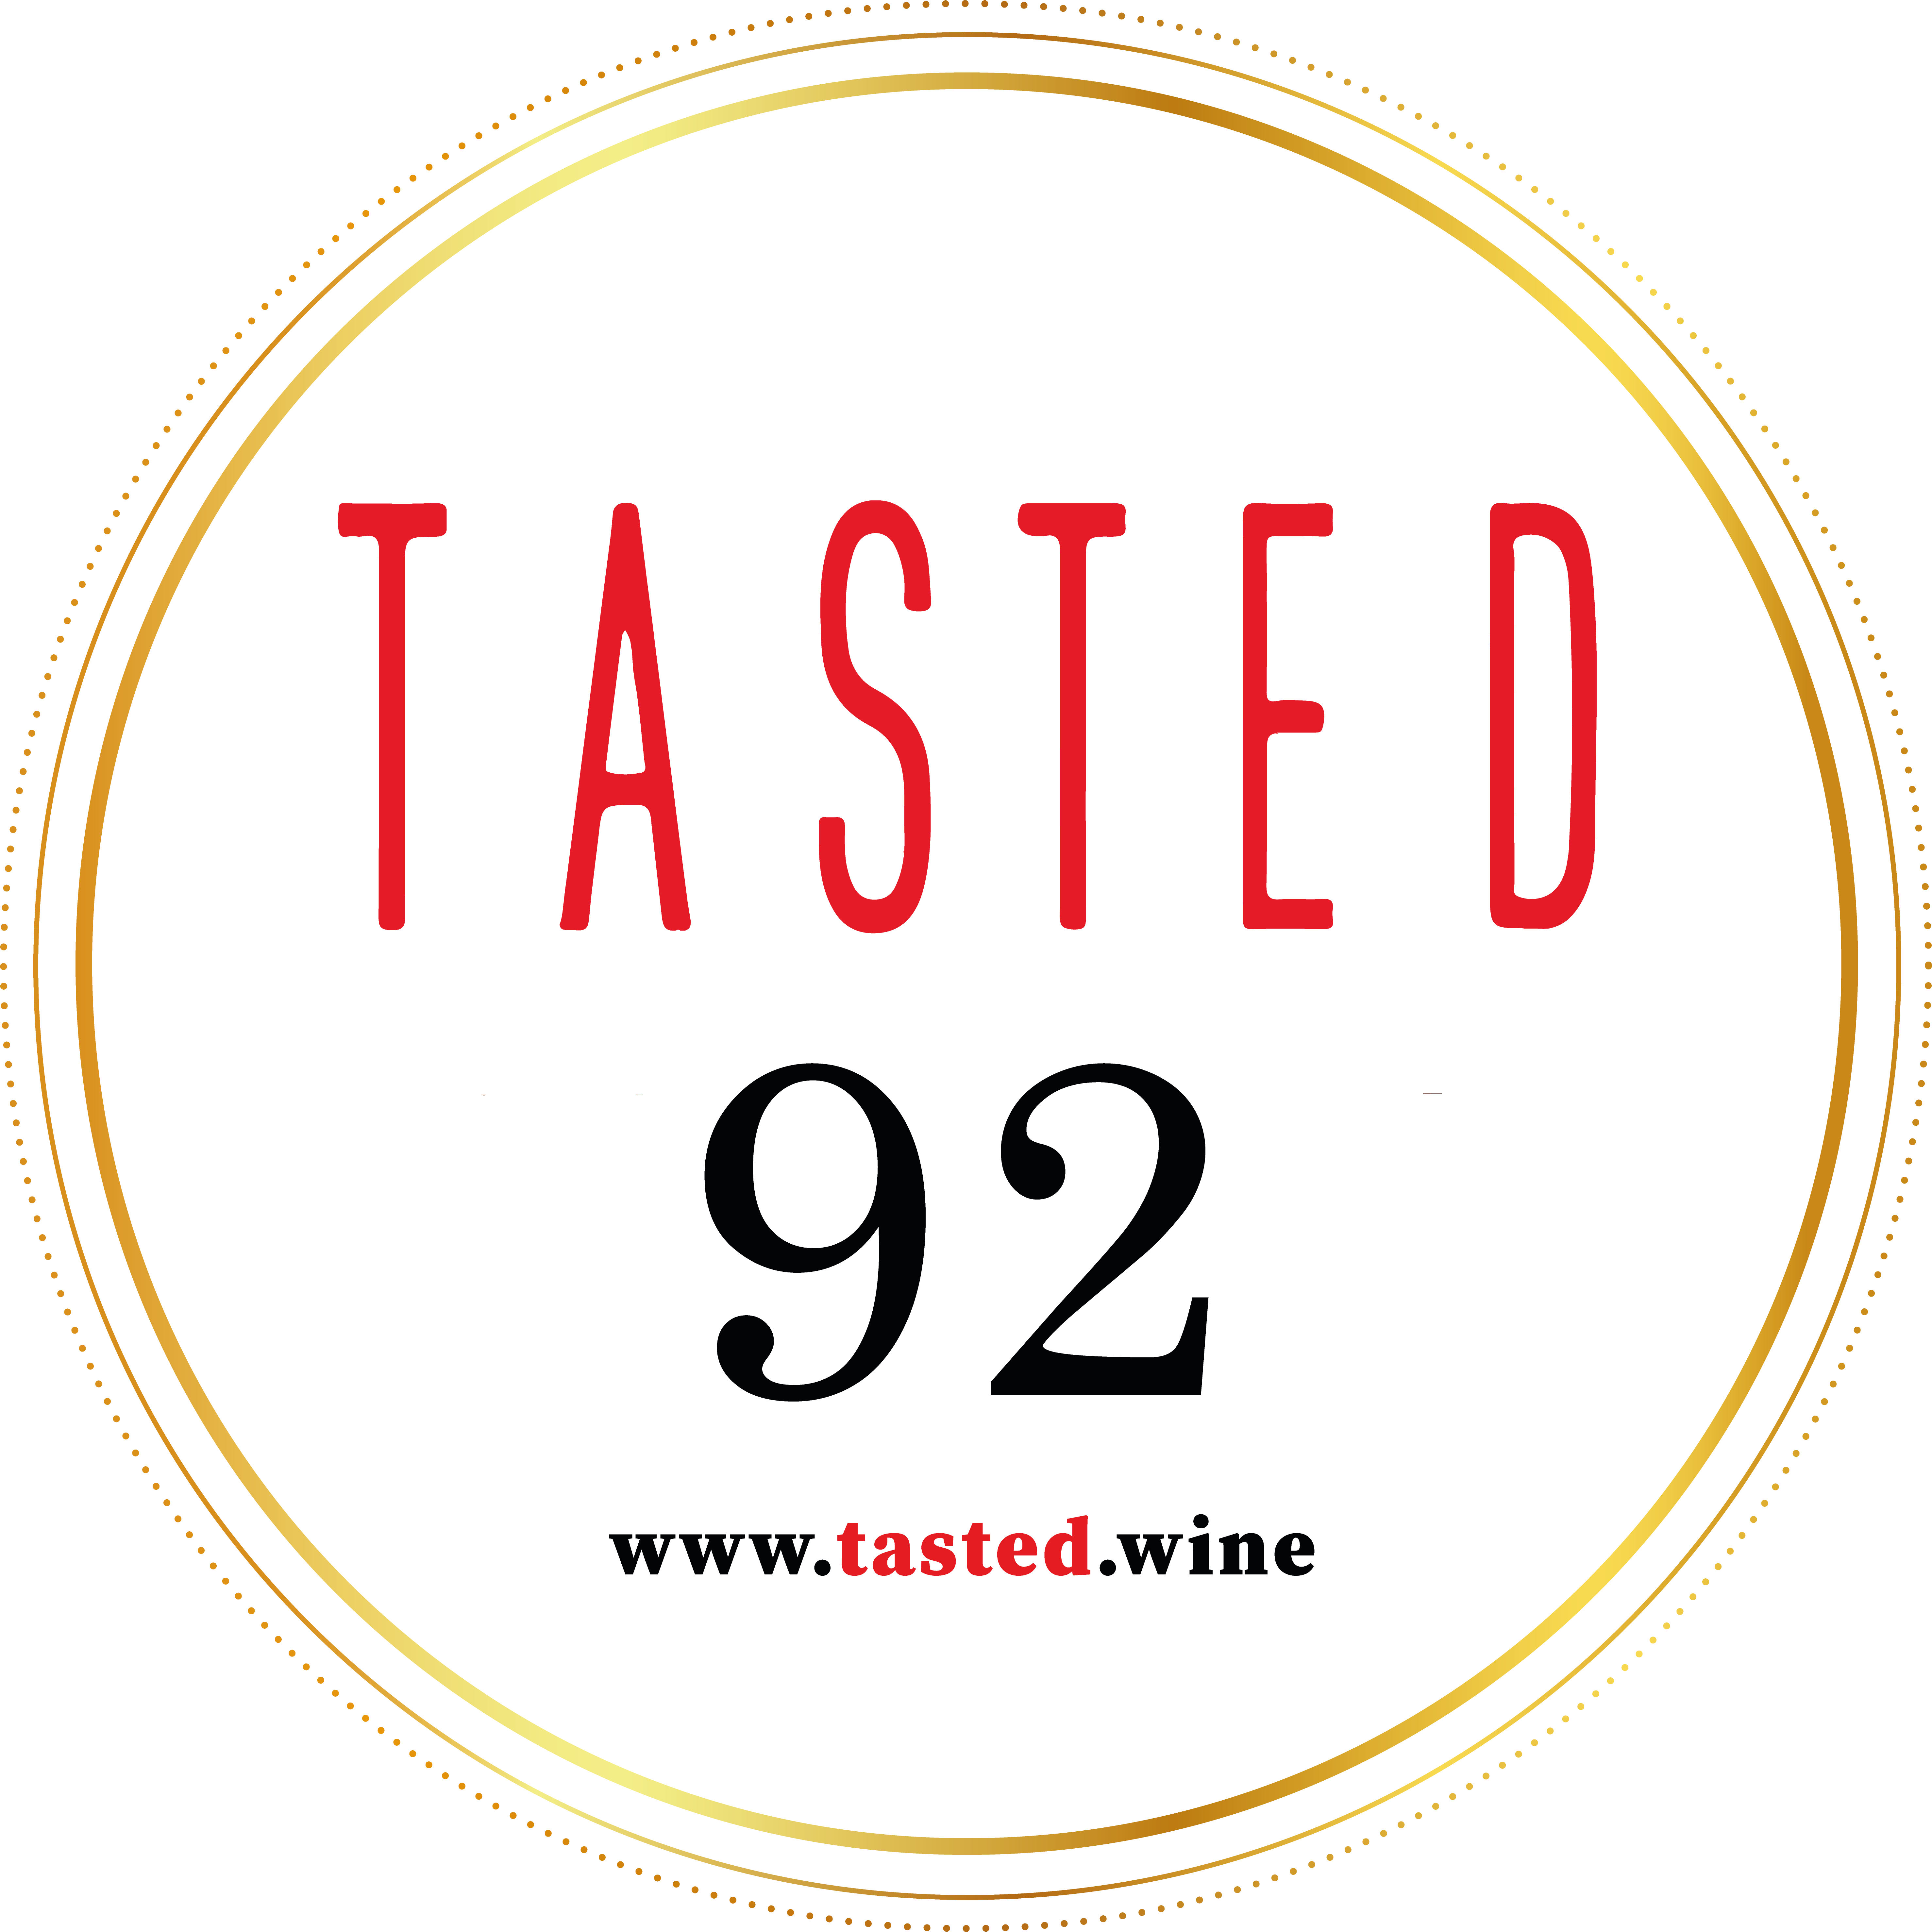 August 2020: 92 points BLIND TASTED for vintage 2018